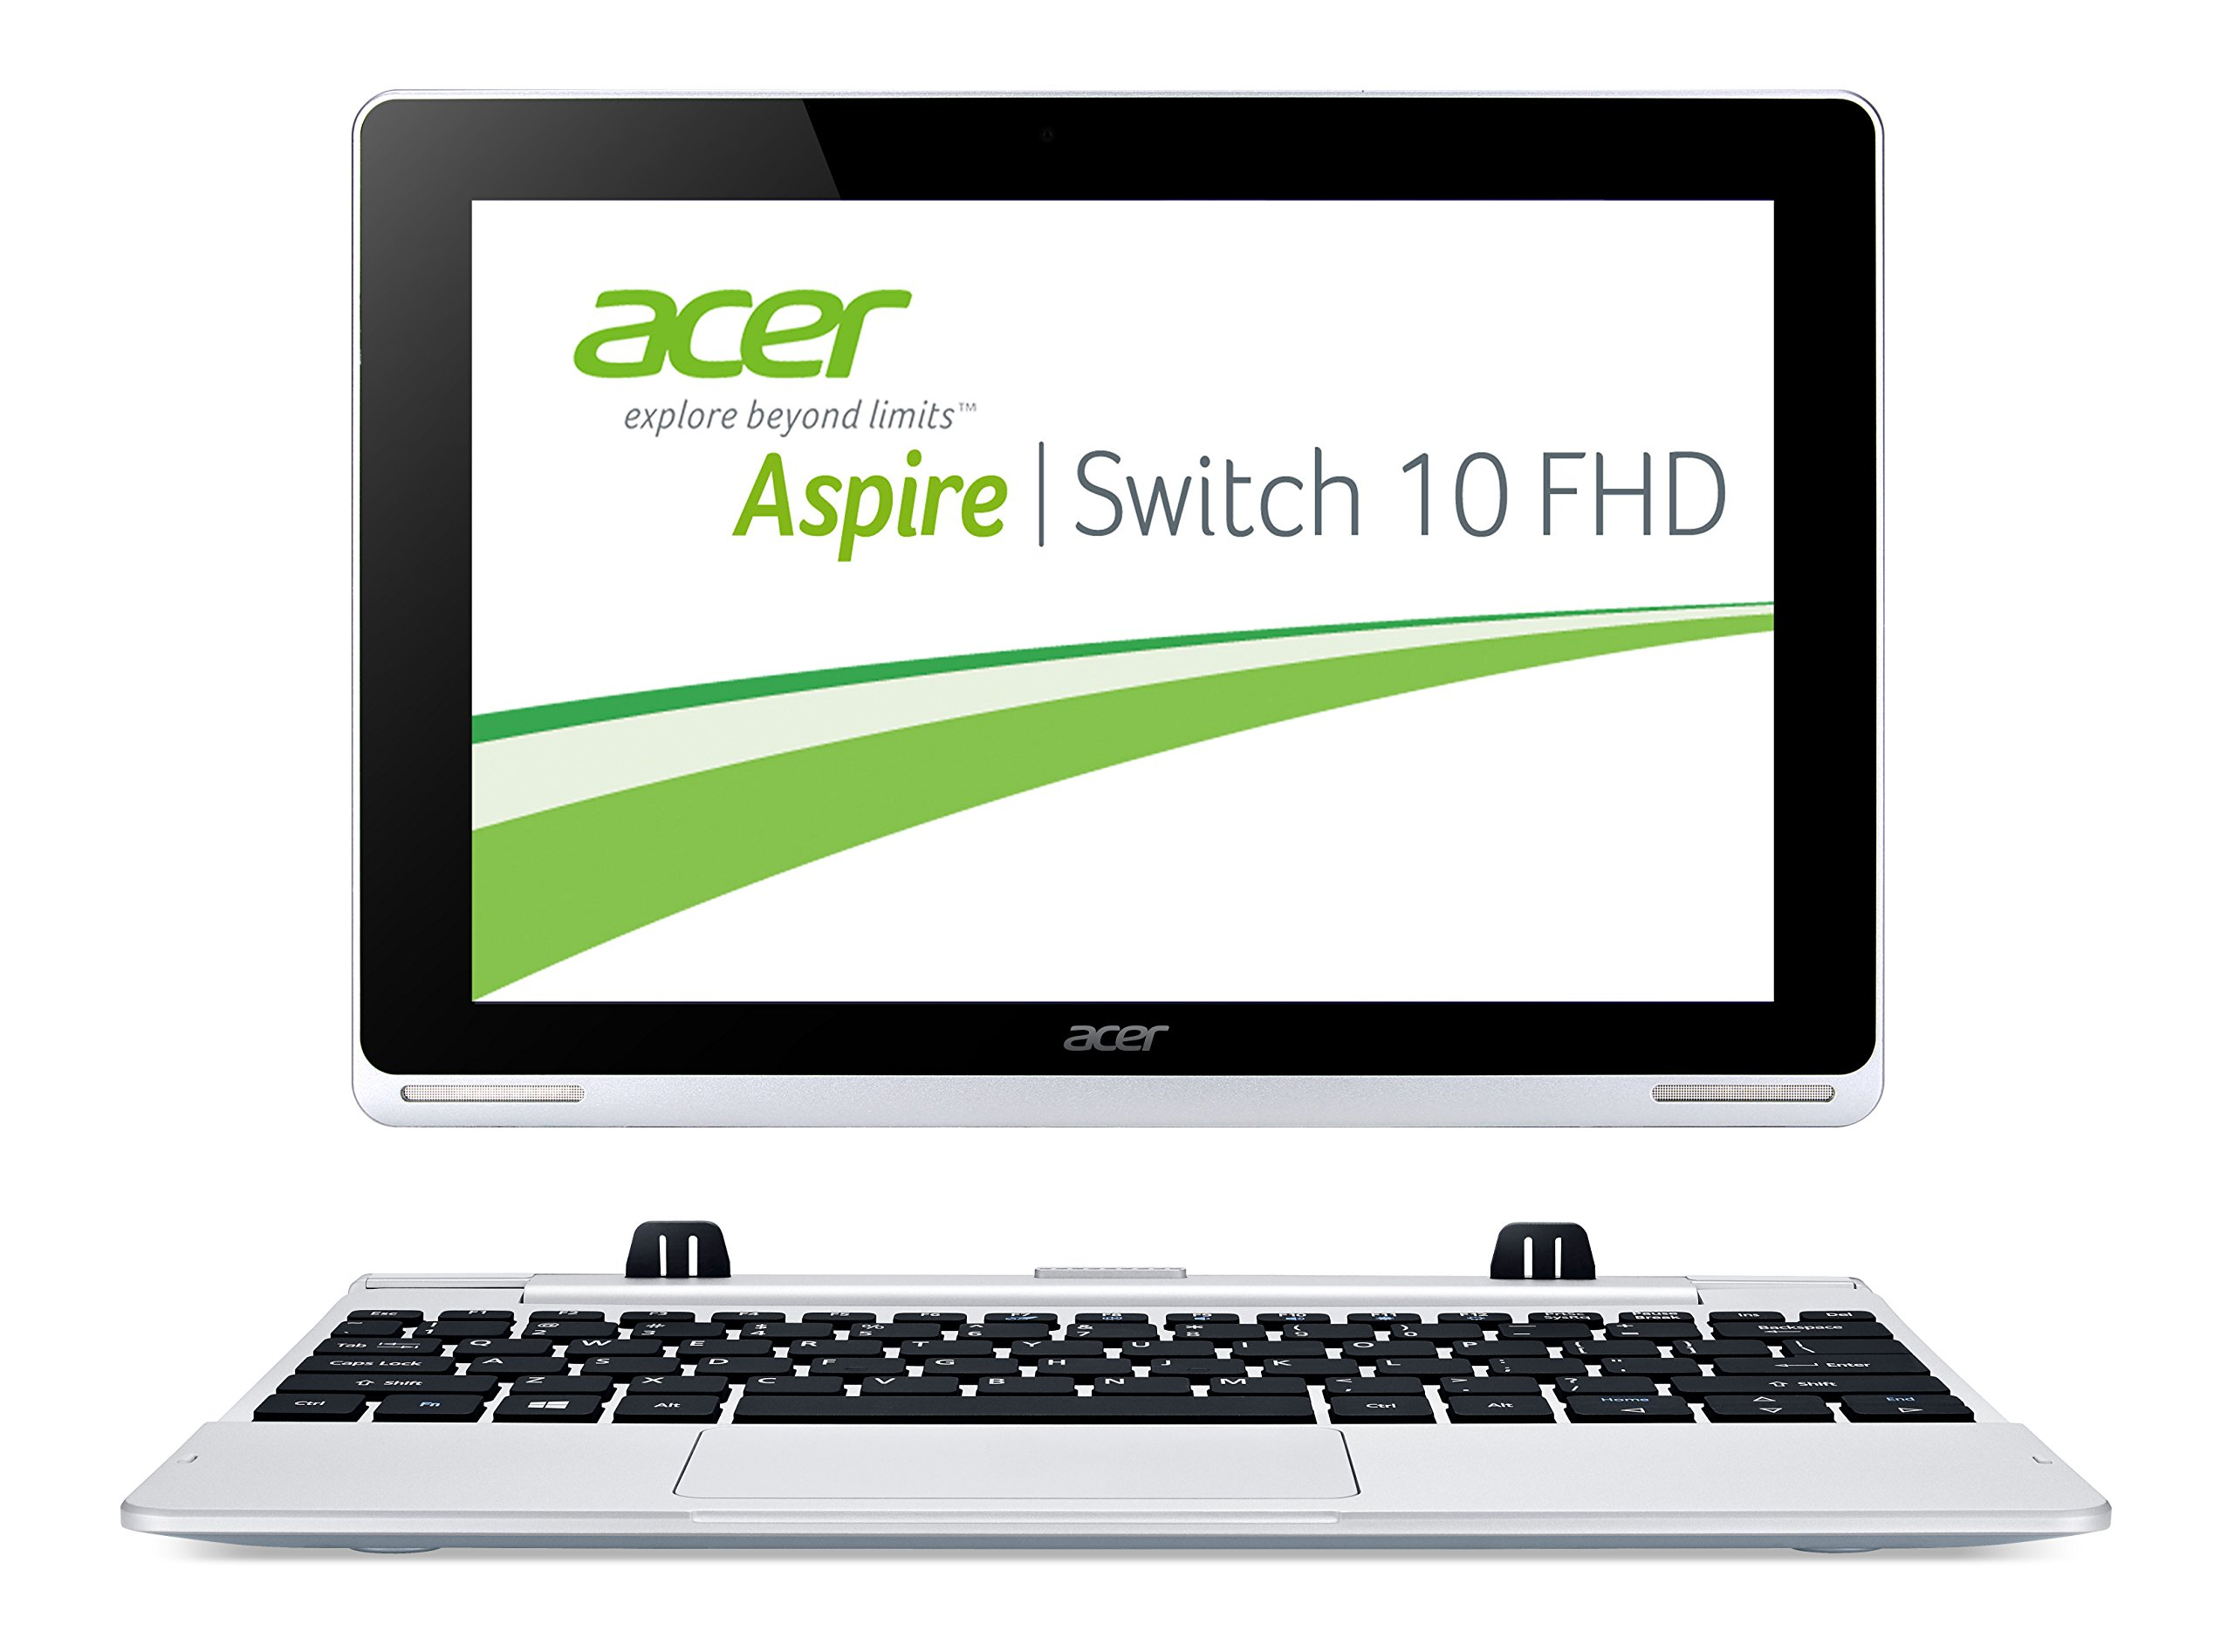 Acer Acer Aspire Switch 10 FHD